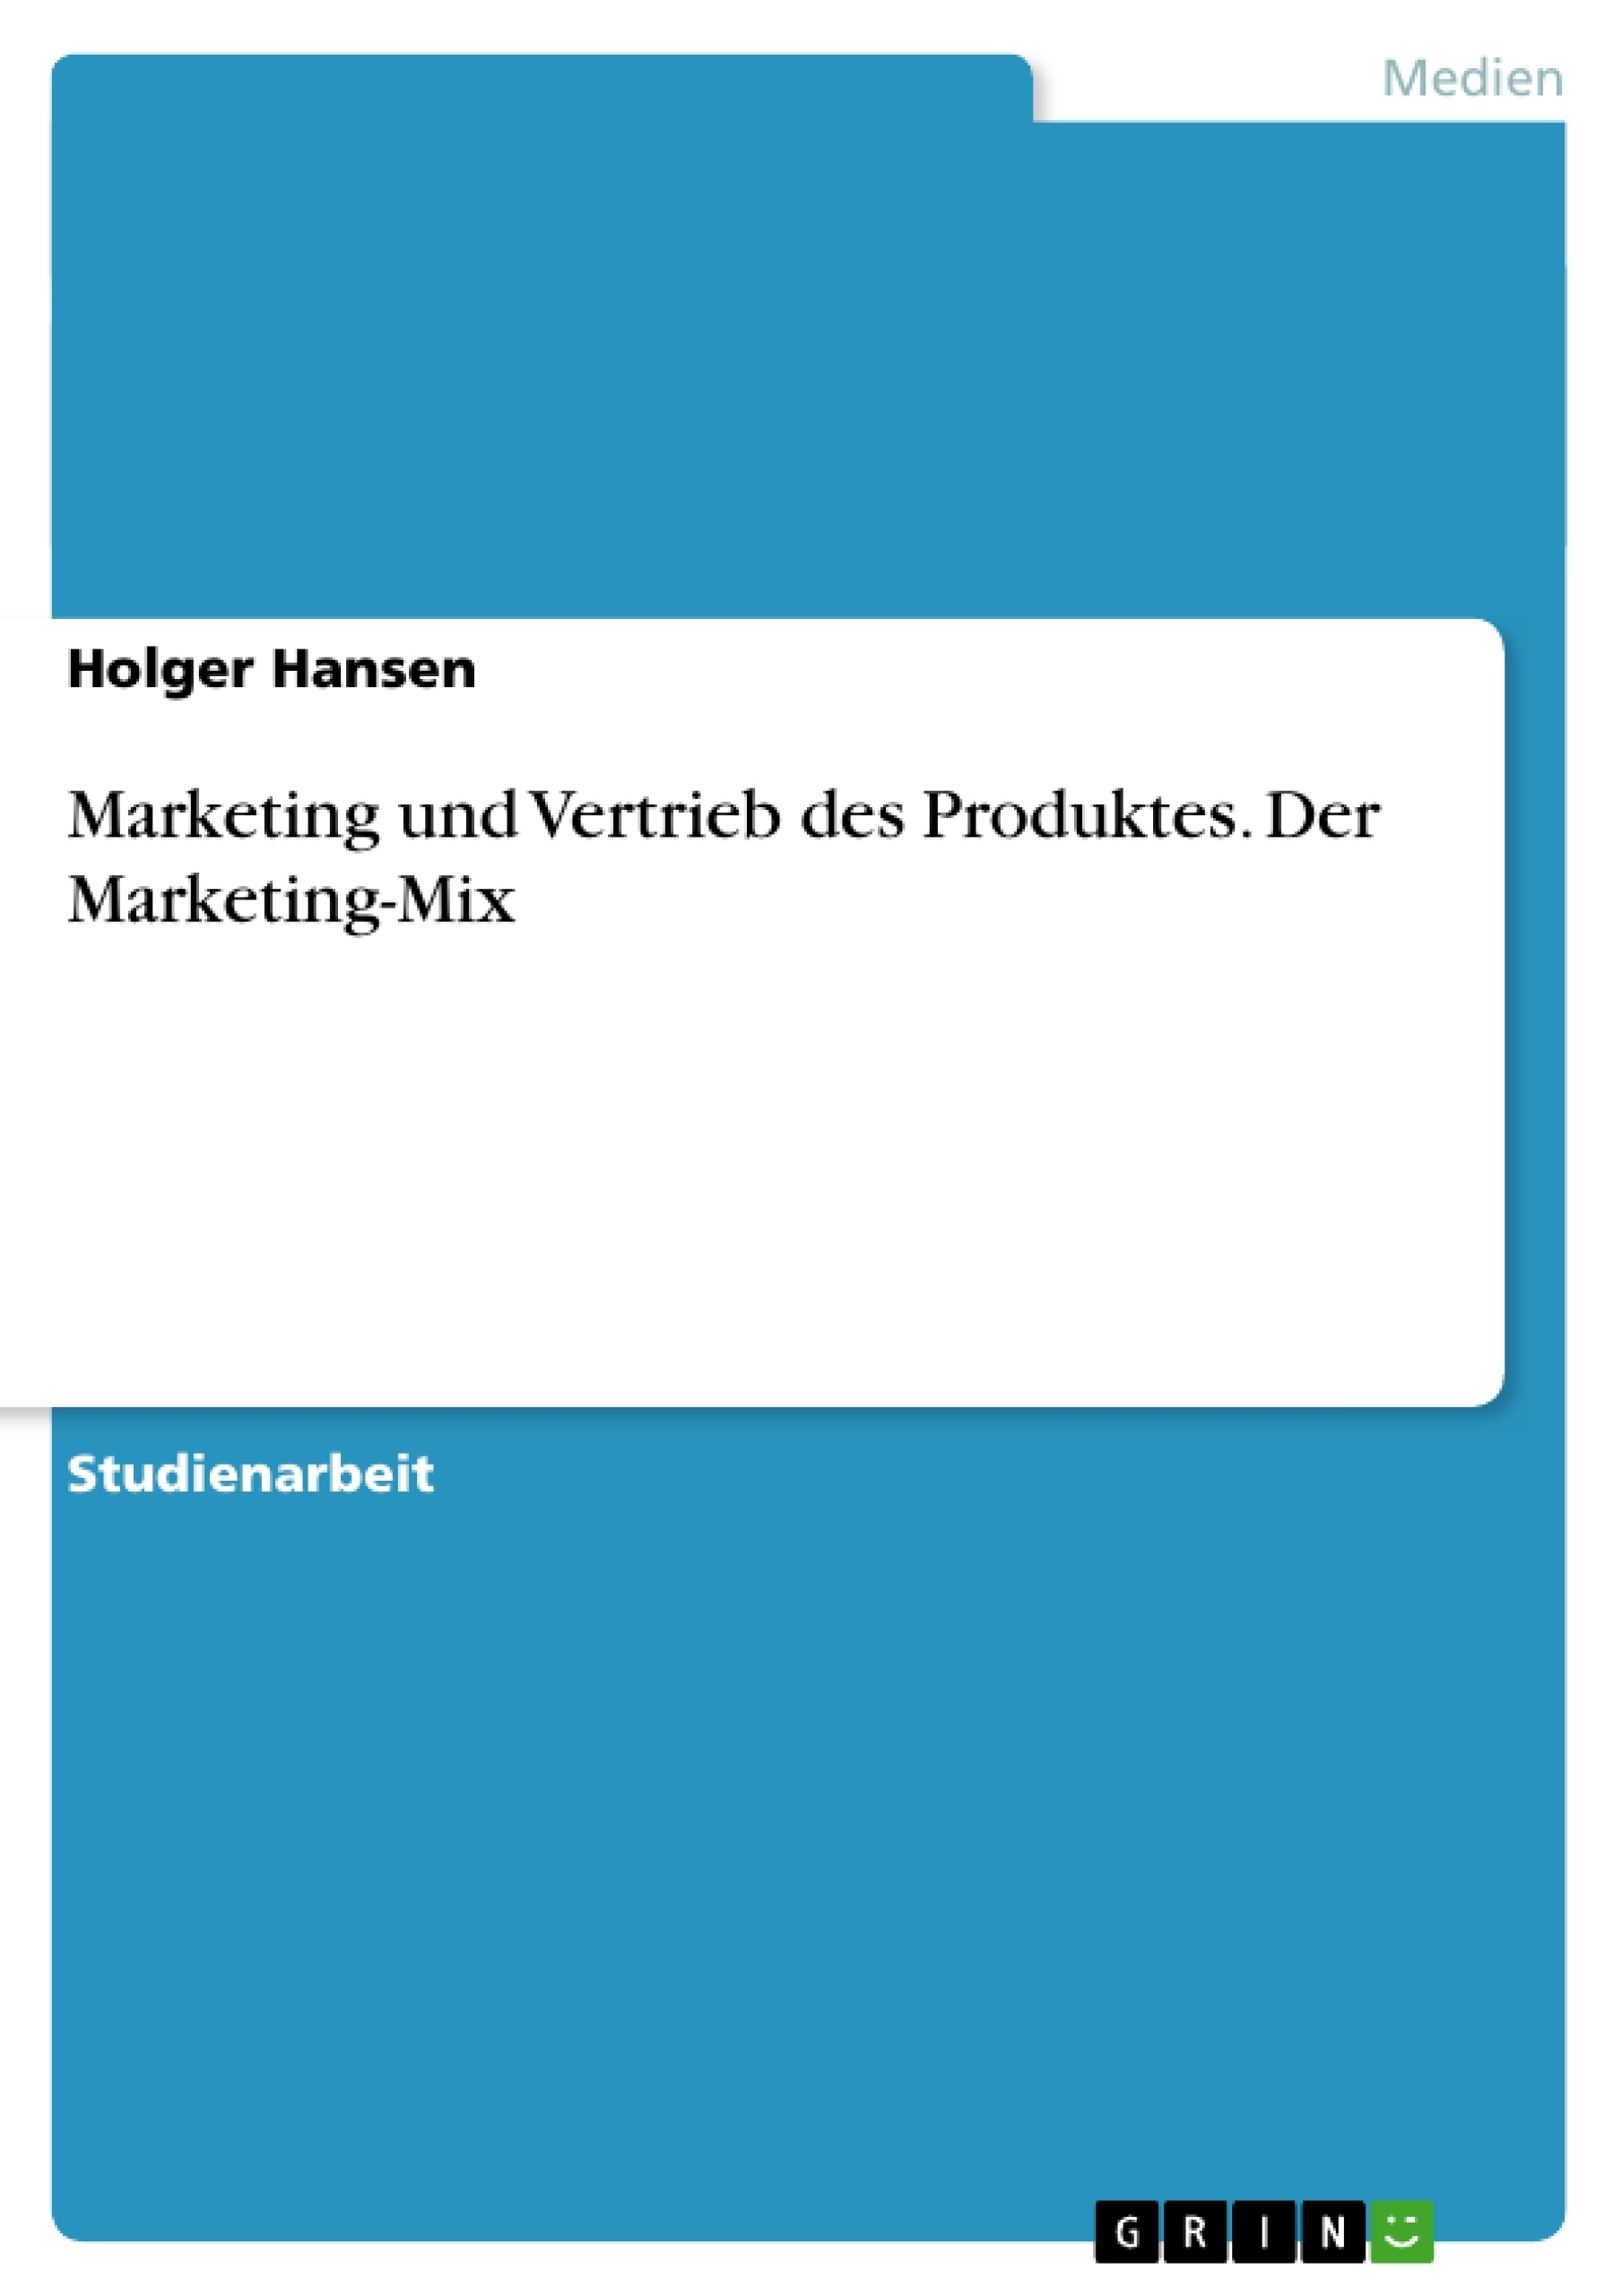 Titel: Marketing und Vertrieb des Produktes. Der Marketing-Mix